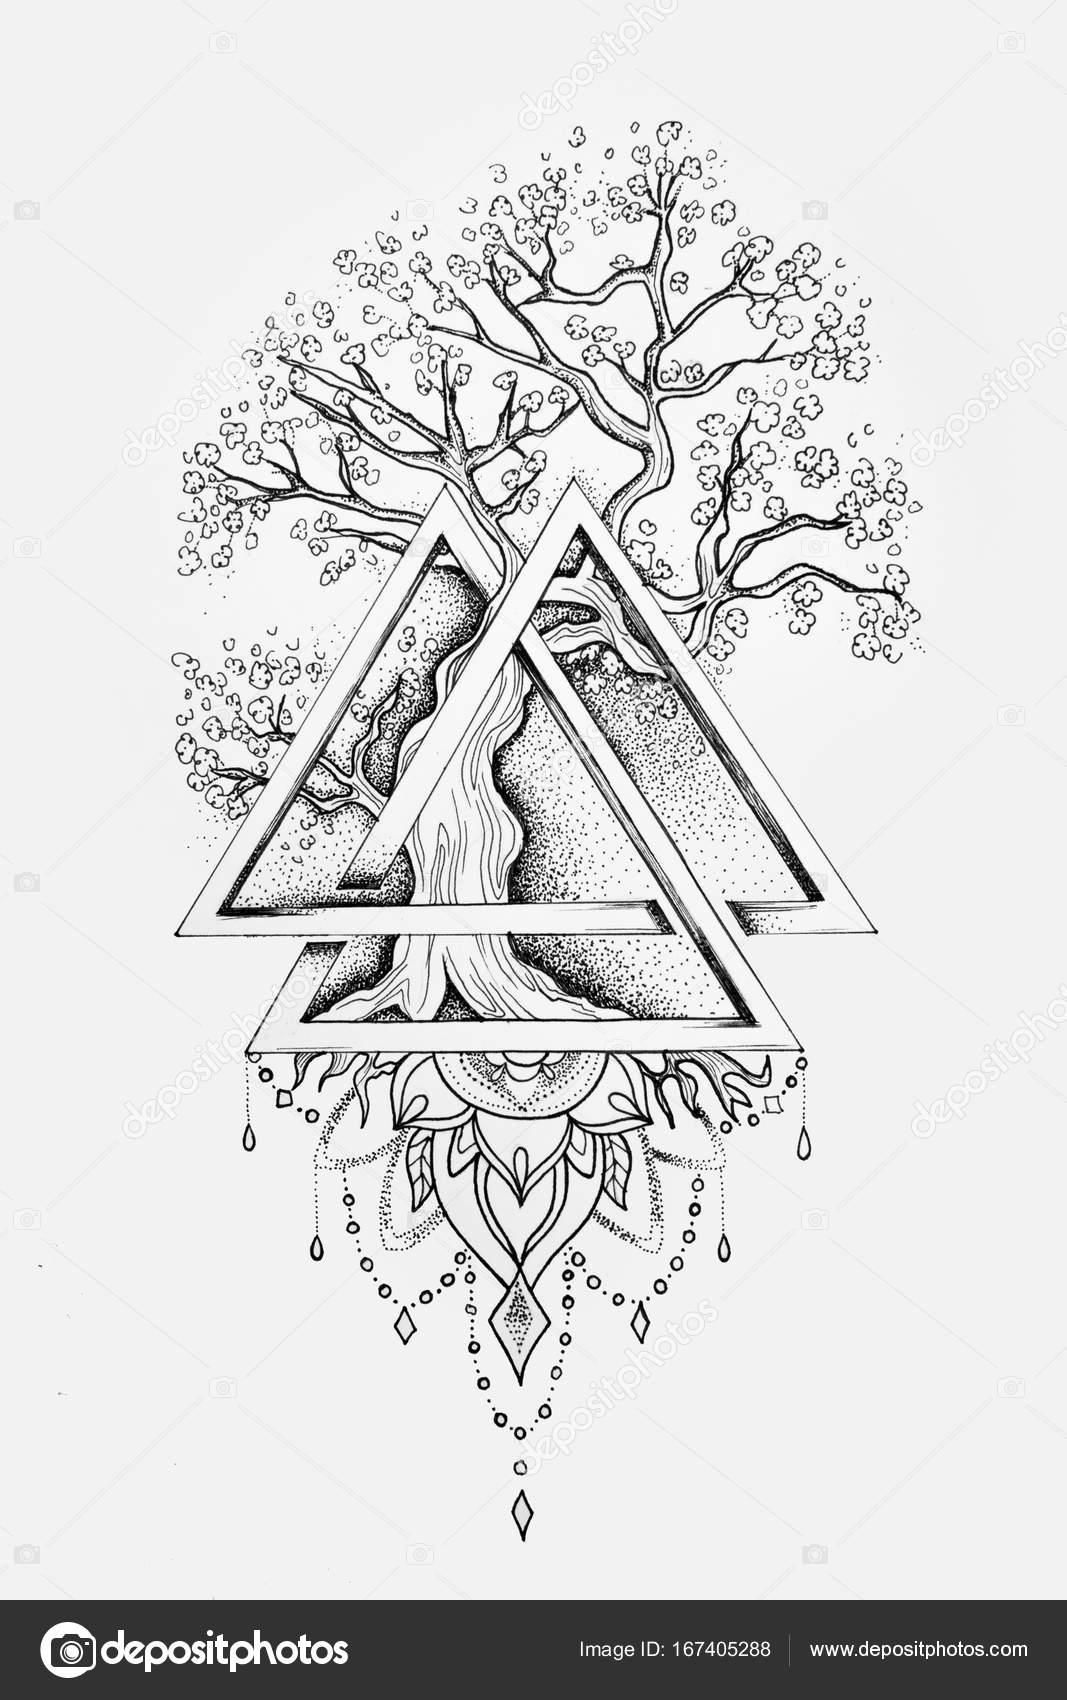 A Sketch Of A Beautiful Big Tree In A Triangle On A White Background Stock Photo Image By C Nookphoto Mail Ru 167405288